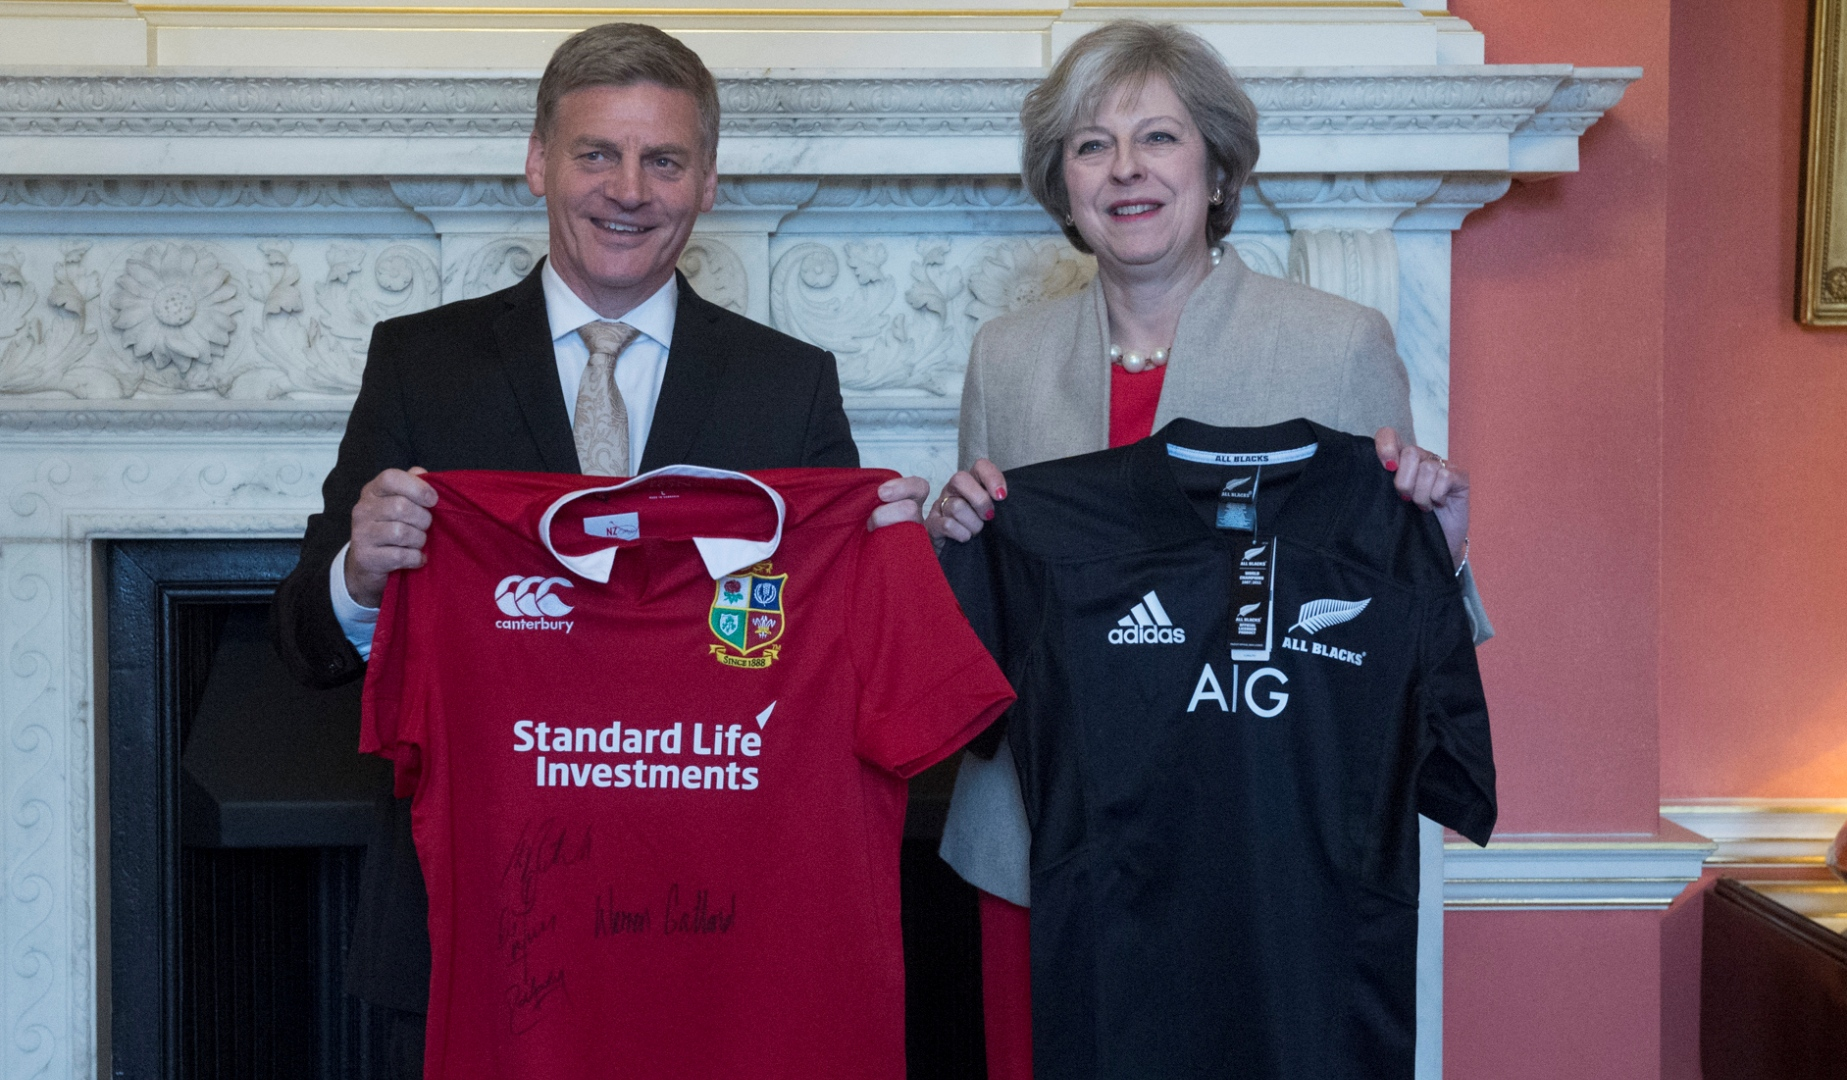 Prime Ministers Jersey Swap